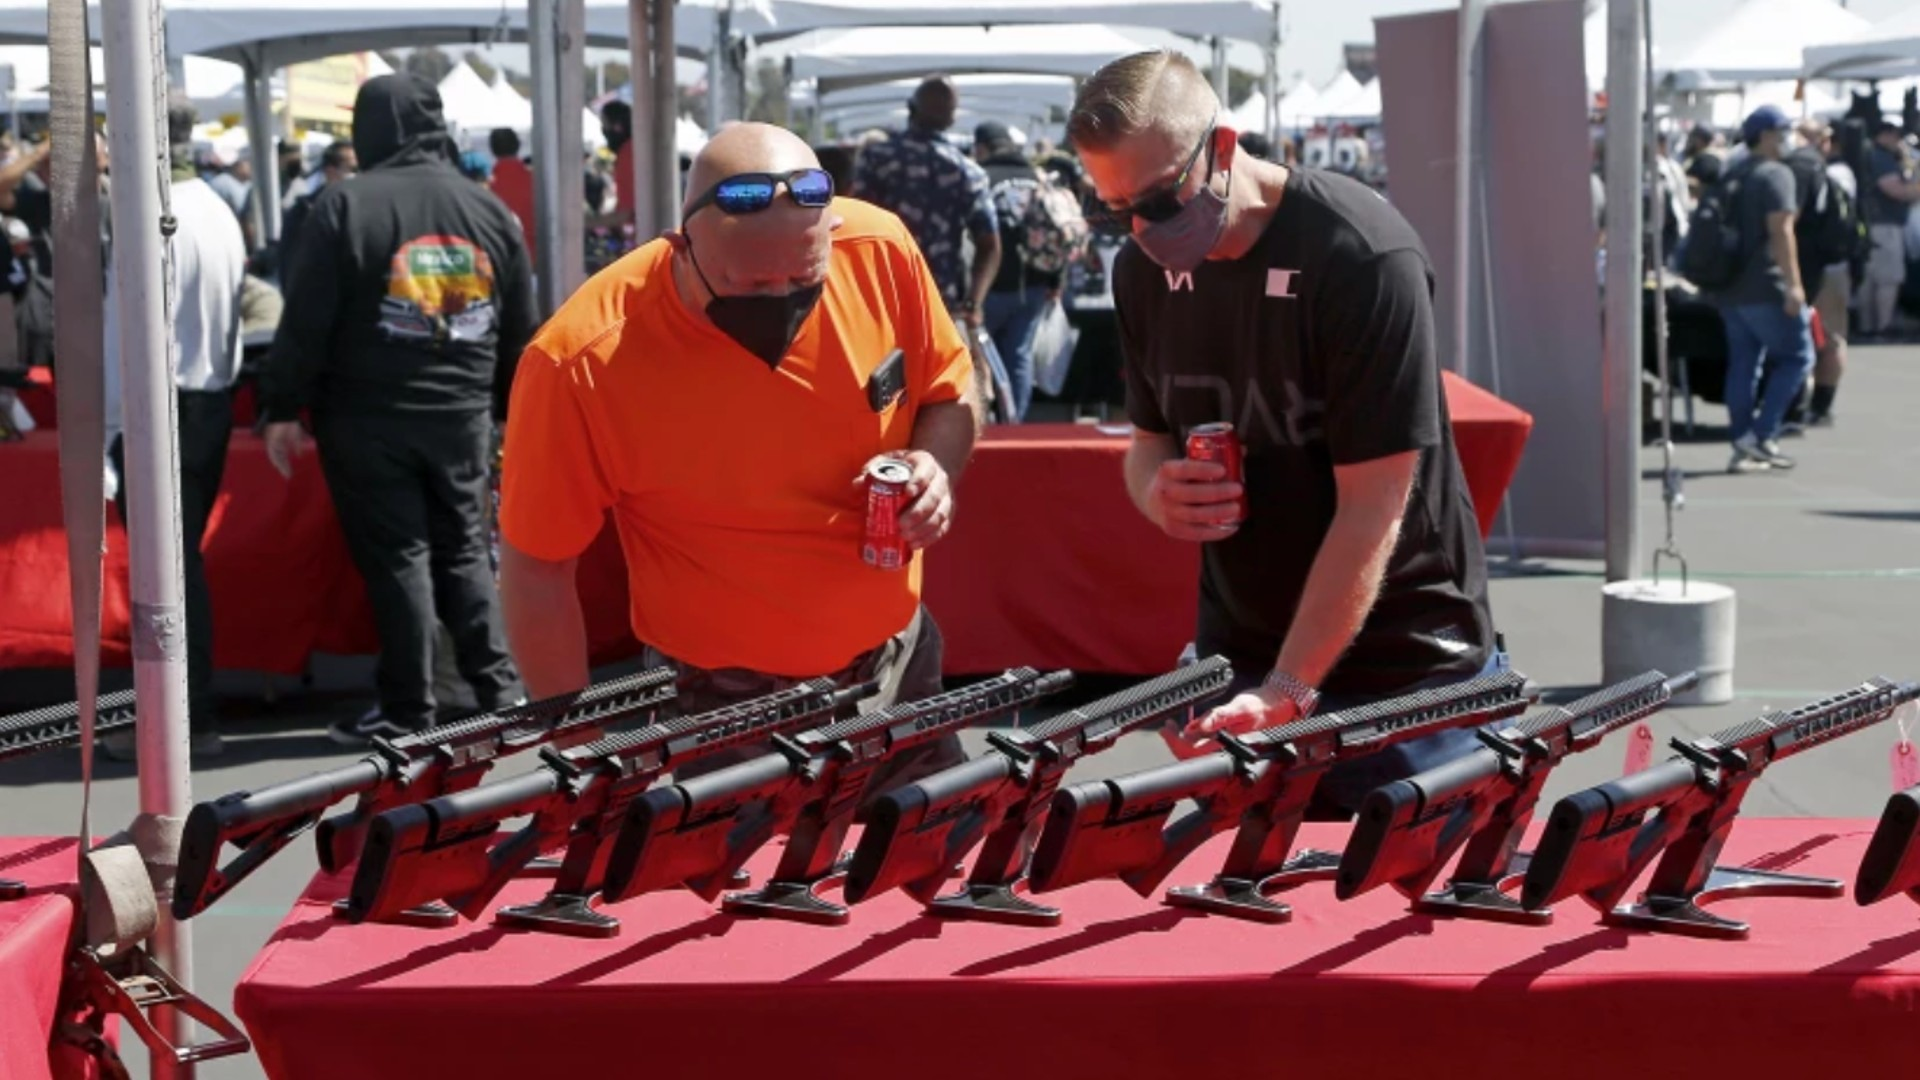 Gun enthusiasts check out sporting rifles in March during the Crossroads of the West Gun Show at the Orange County fairgrounds in Costa Mesa.(Kevin Chang / Times Community News)